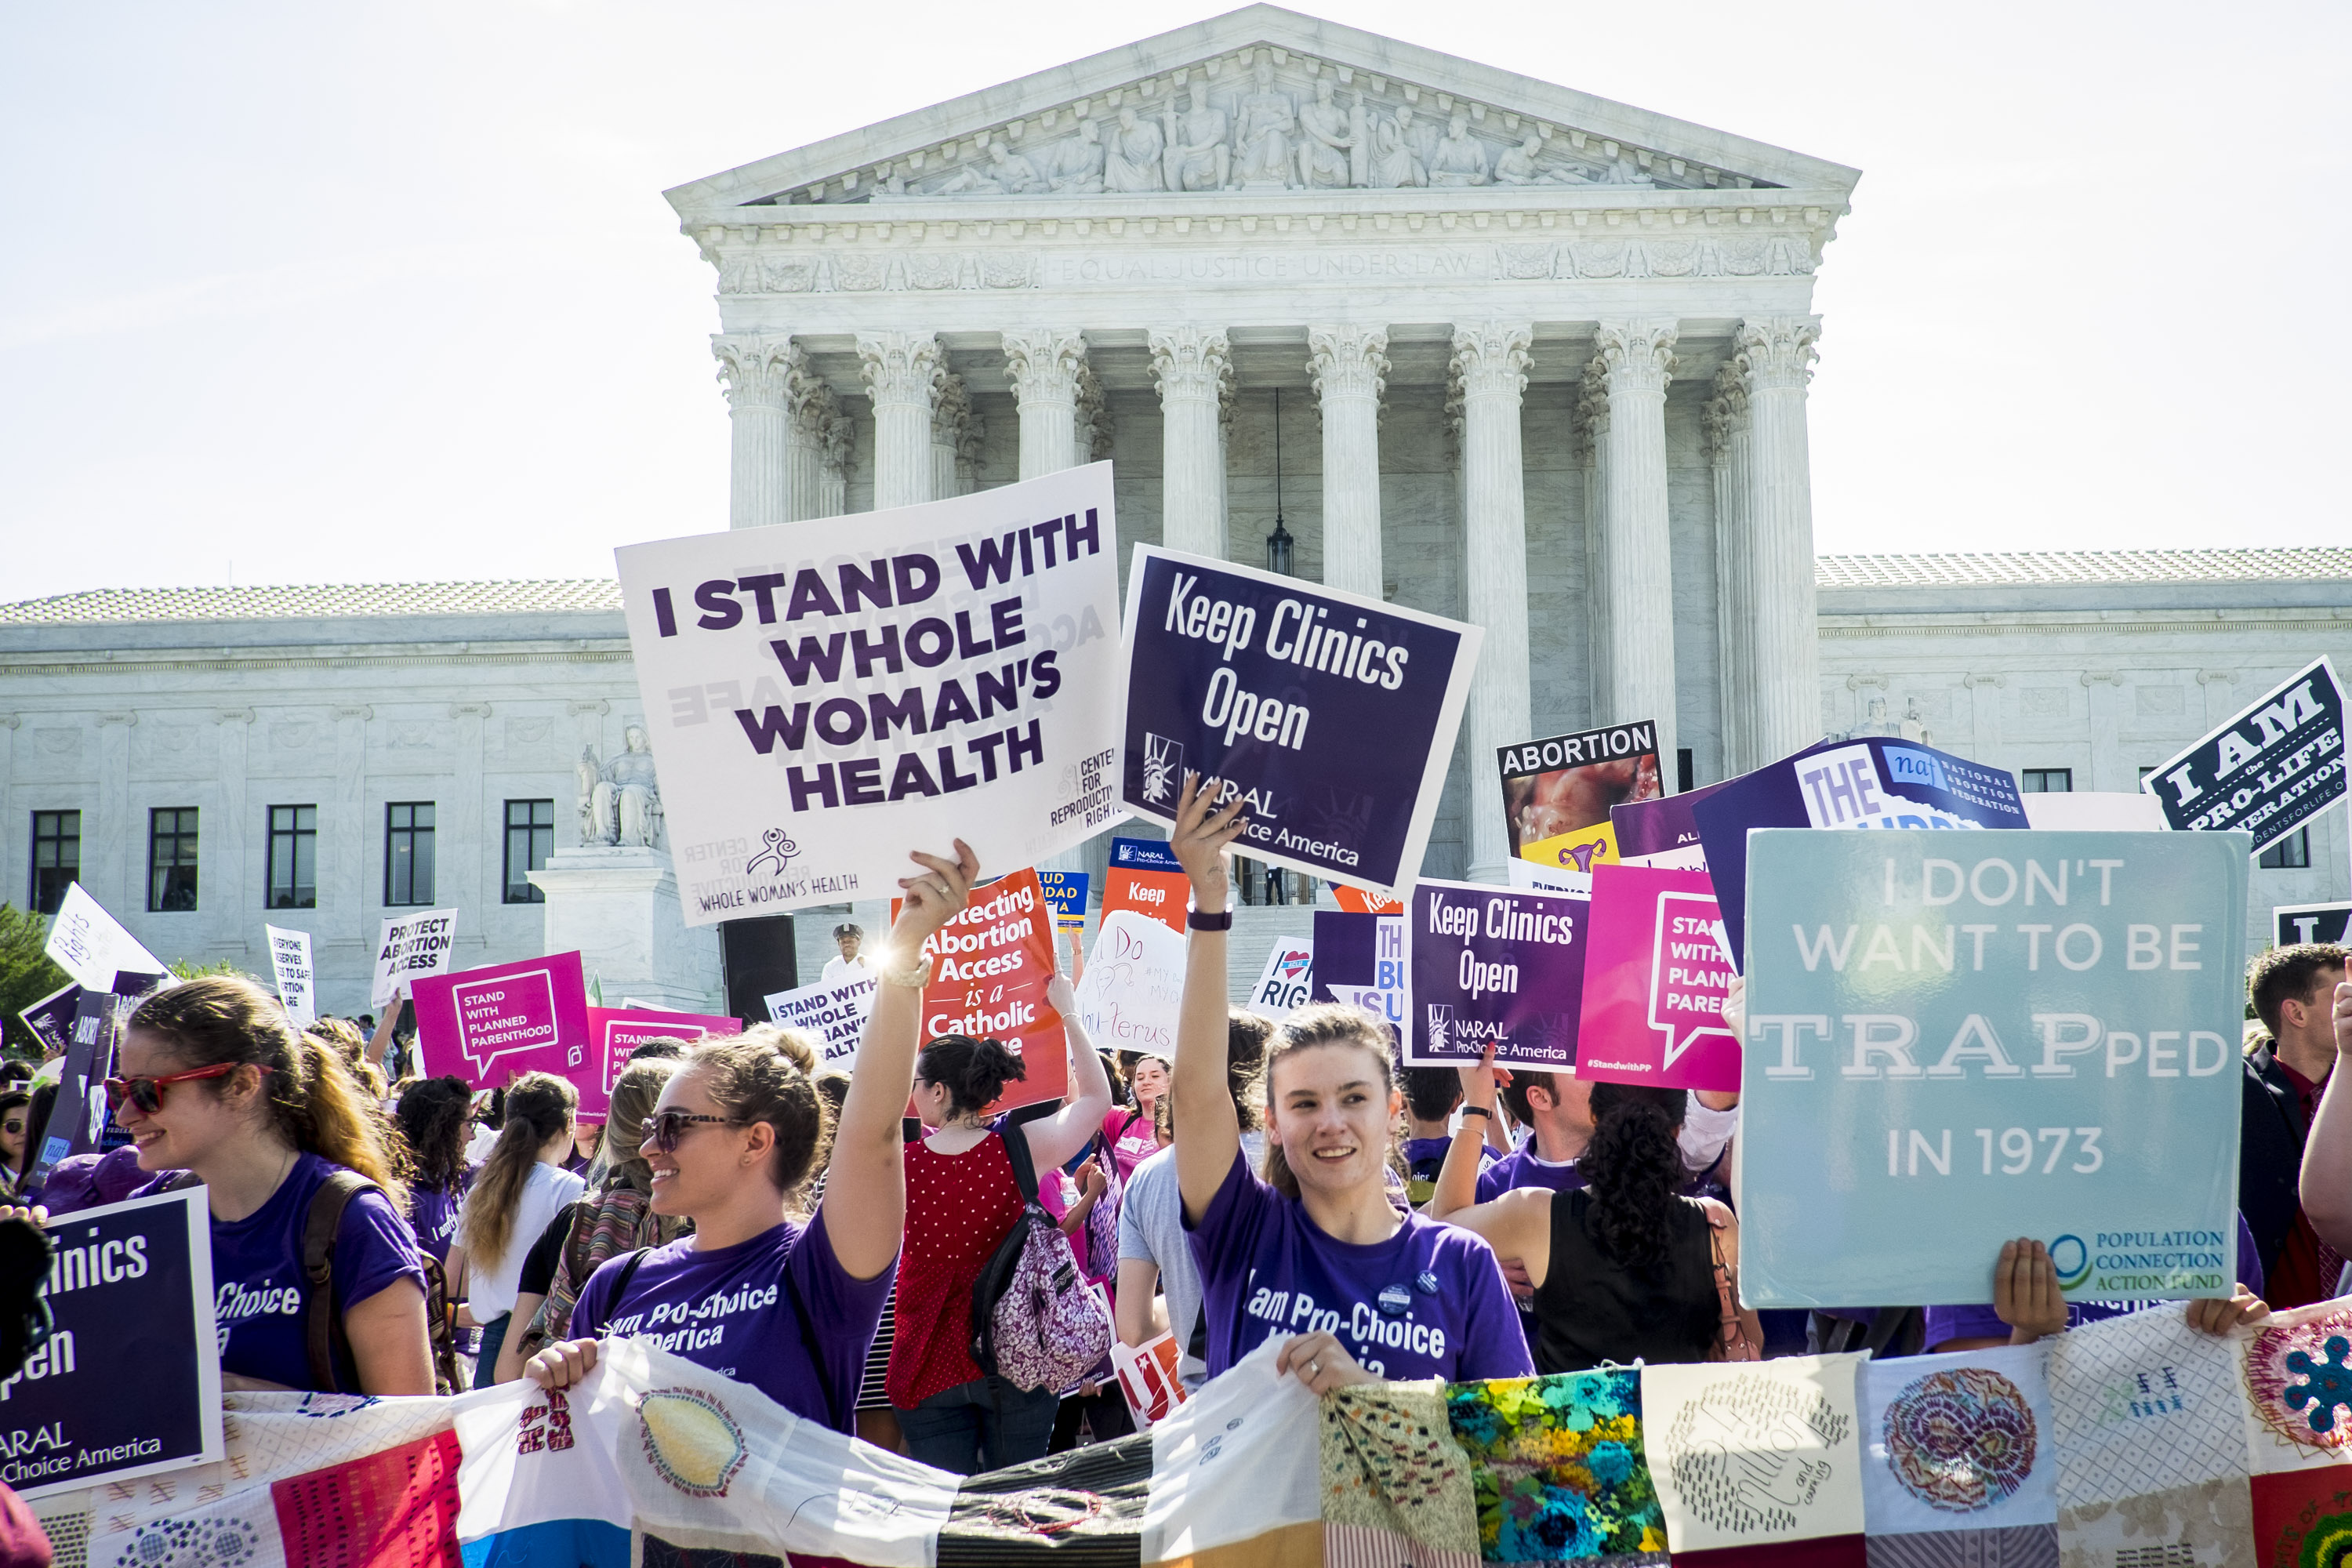 Pro-choice and pro-life activists demonstrate on the steps of the United States Supreme Court in Washington, D.C. on June 27, 2016.